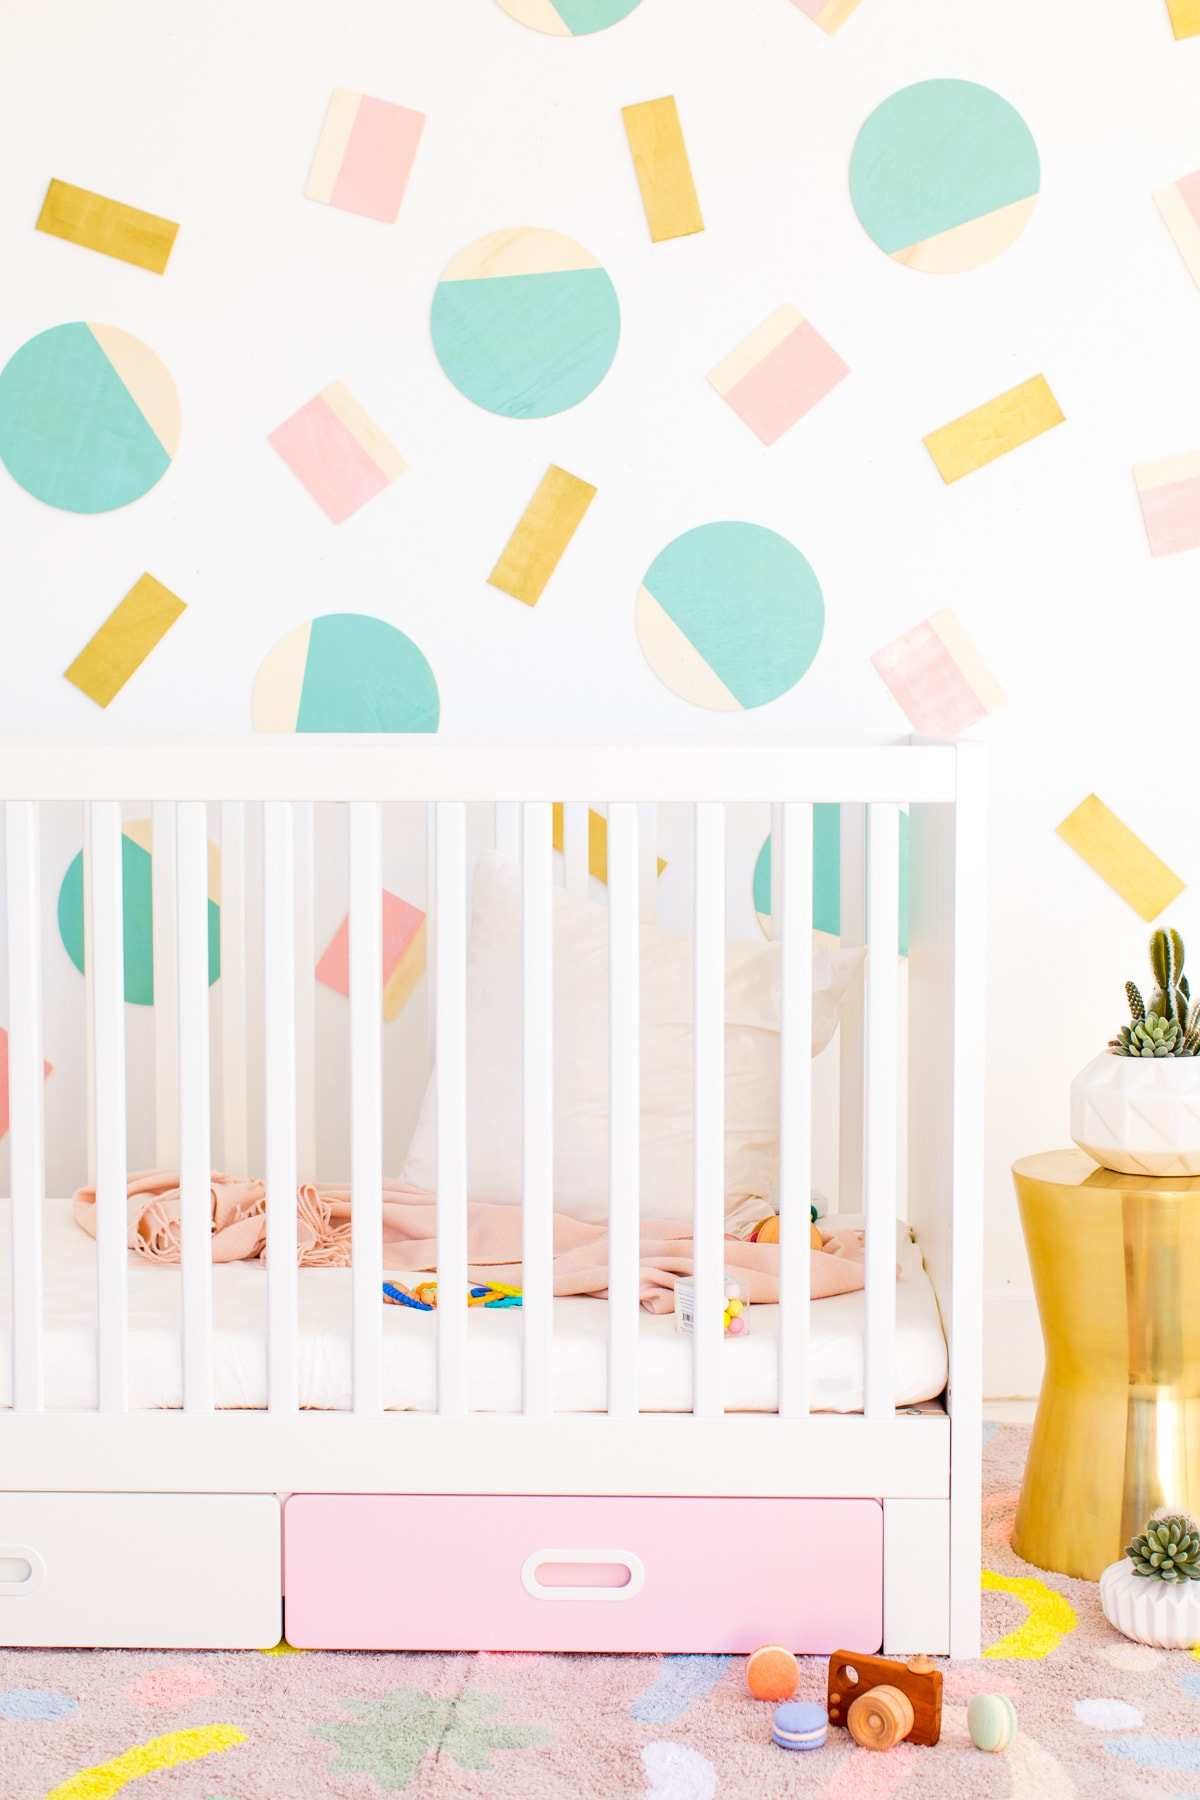 Abstract Shapes DIY Kids Wall Decor by Houston lifestyle blogger Ashley Rose of Sugar and Cloth -- #DIYBABYROOMDECOR #KRYLON #SPRAYPAINTPROJECT #NURSERYIDEAS